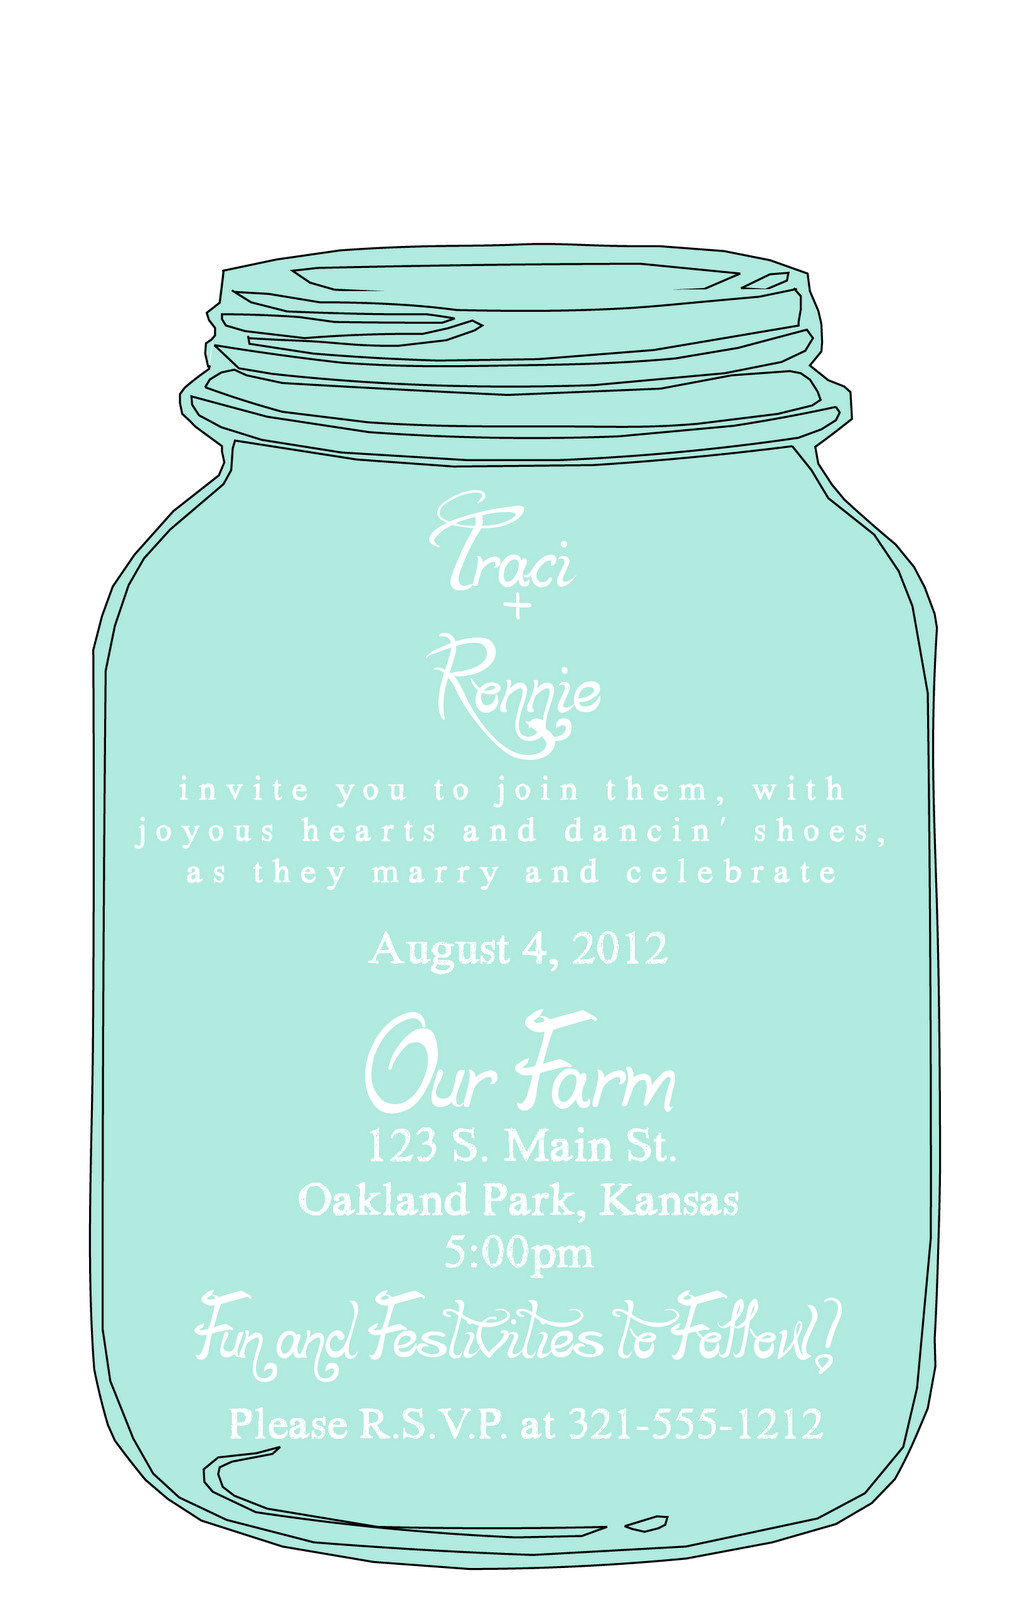 Mason Jar Invite Template Invitations On Pinterest Flyers Templates and Canning